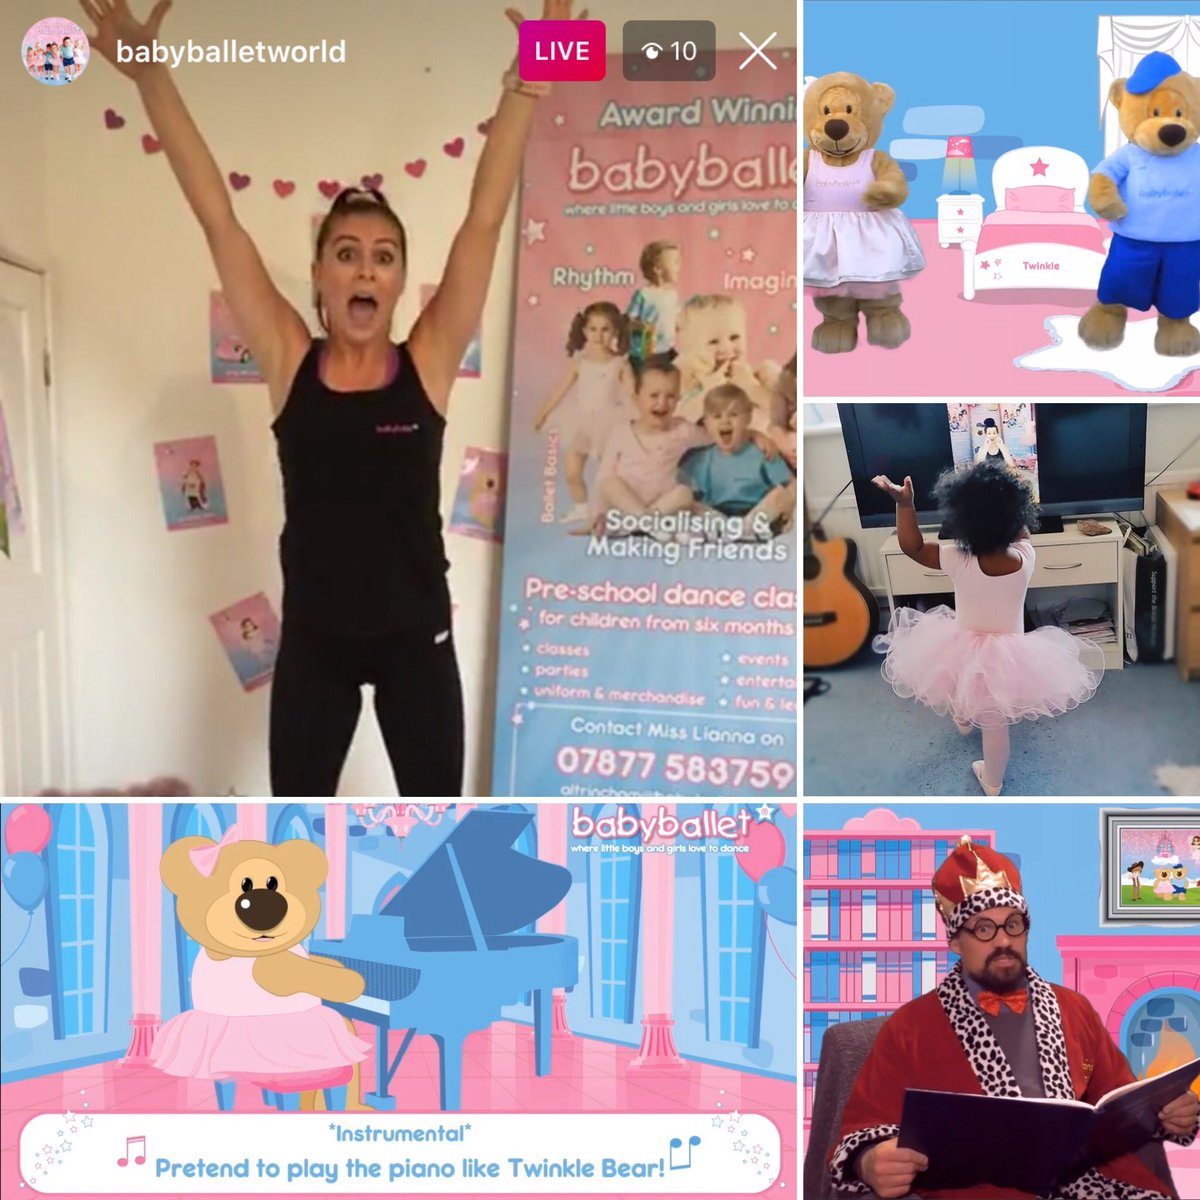 #babyballetonline  So much more than just a dance class  Join us on our Facebook page for Free Taster Sessions, Boogie Times, Sing-a-longs and a Story Time - all this week #babyballet #COVID19 #lockdown #lockdownactivities pic.twitter.com/uqFIxmeI7B